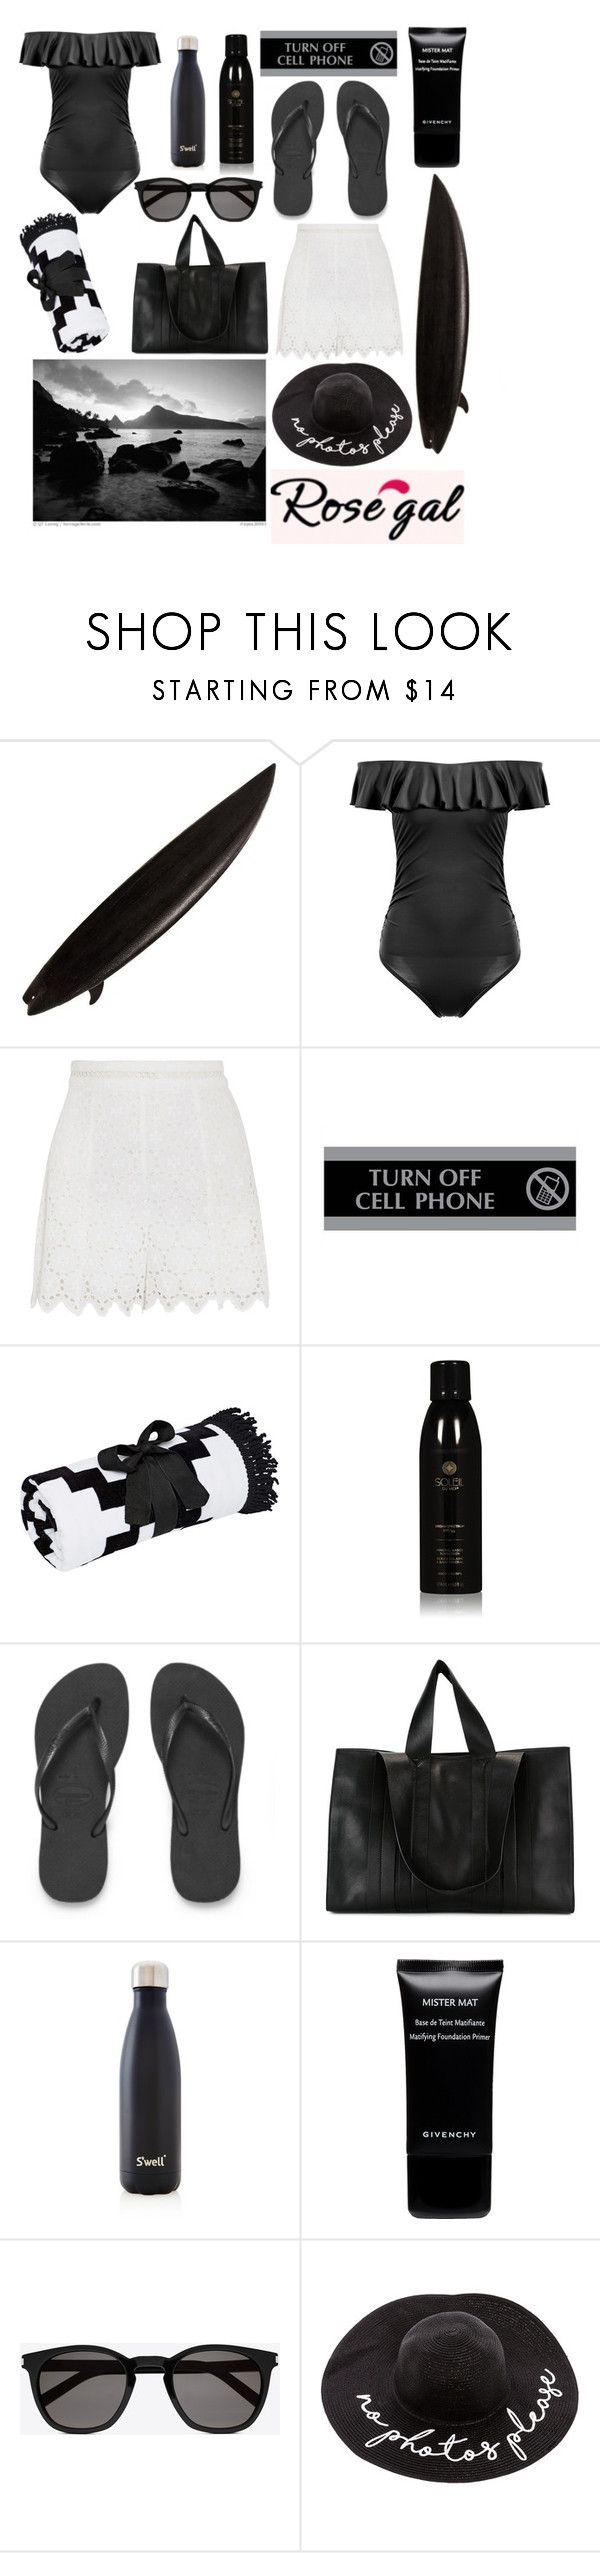 """Chic Beach"" by newplanet ❤ liked on Polyvore featuring Elisabeth Weinstock, Zimmermann, U.S. Stamp & Sign, Soleil Toujours, Havaianas, Corto Moltedo, S'well, Givenchy, South Beach and Yves Saint Laurent"